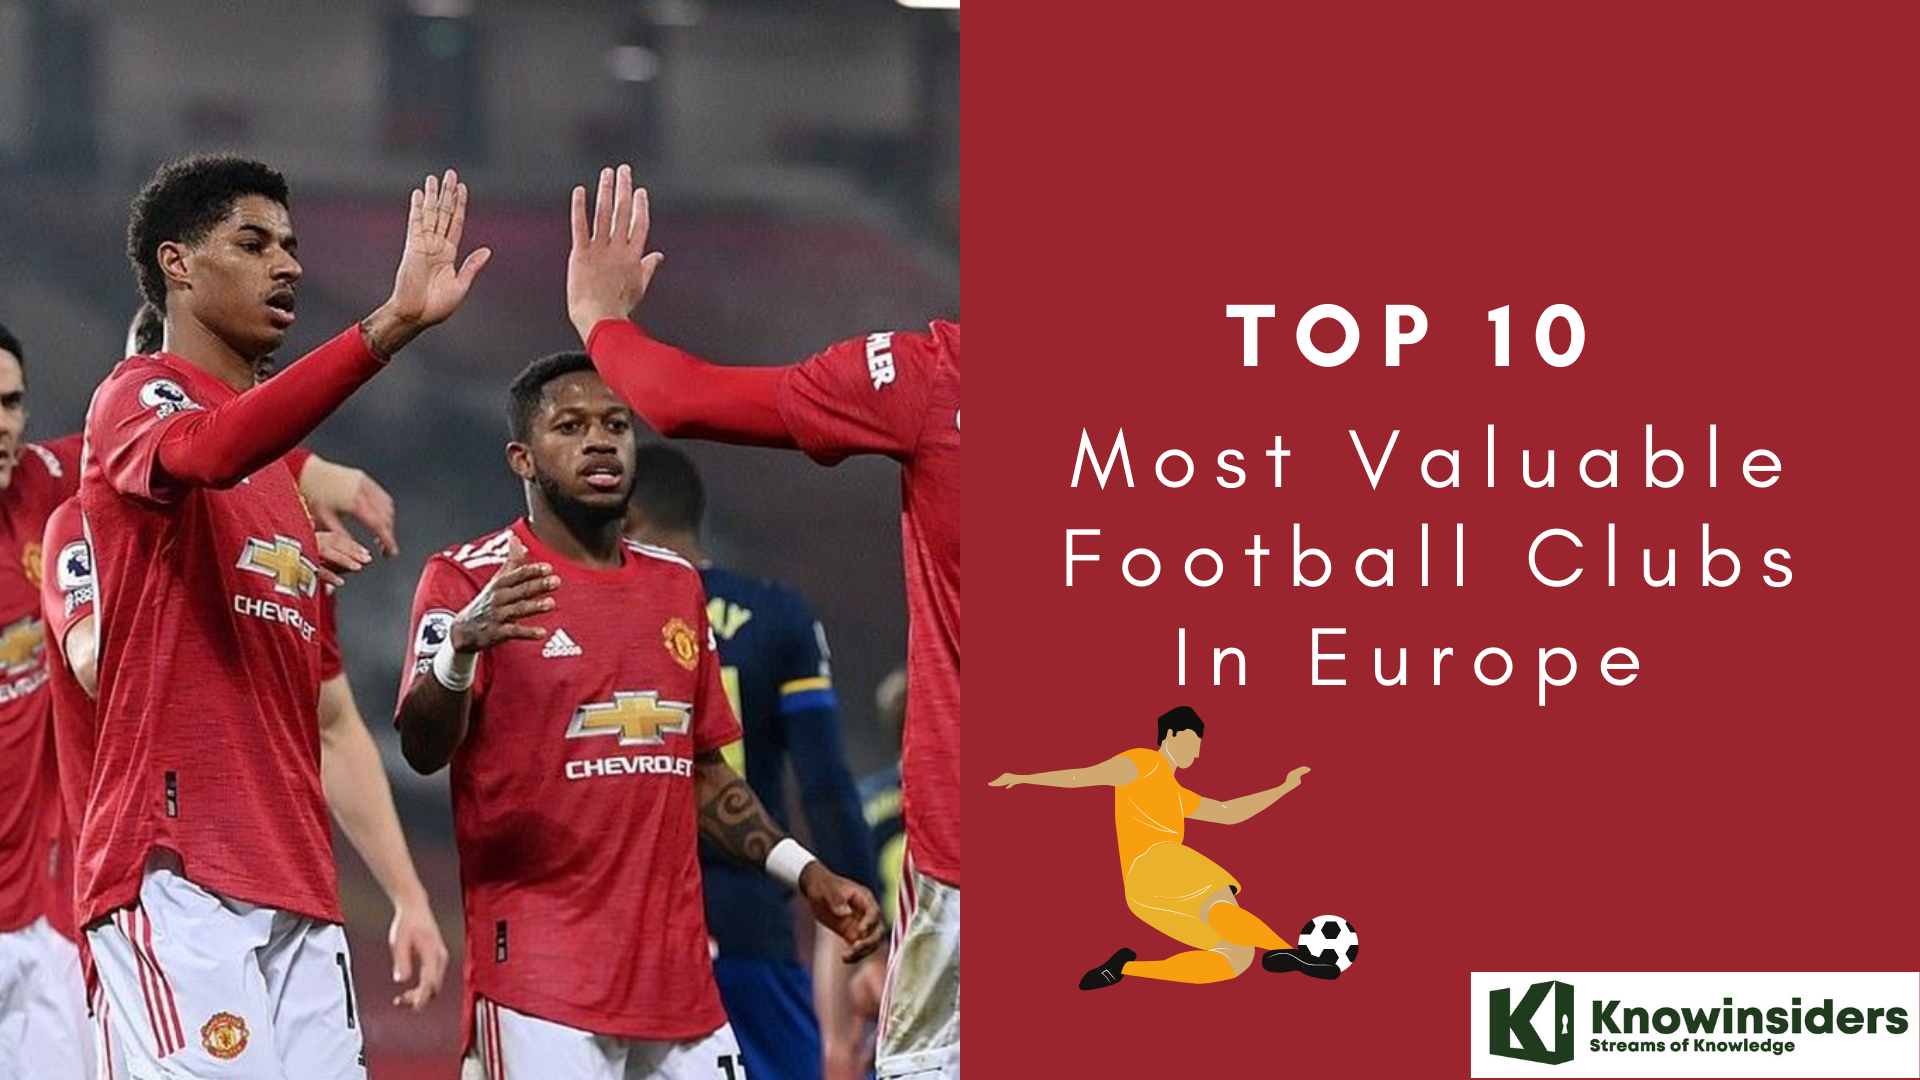 Top 10 Most Valuable Footbal Clubs in Europe